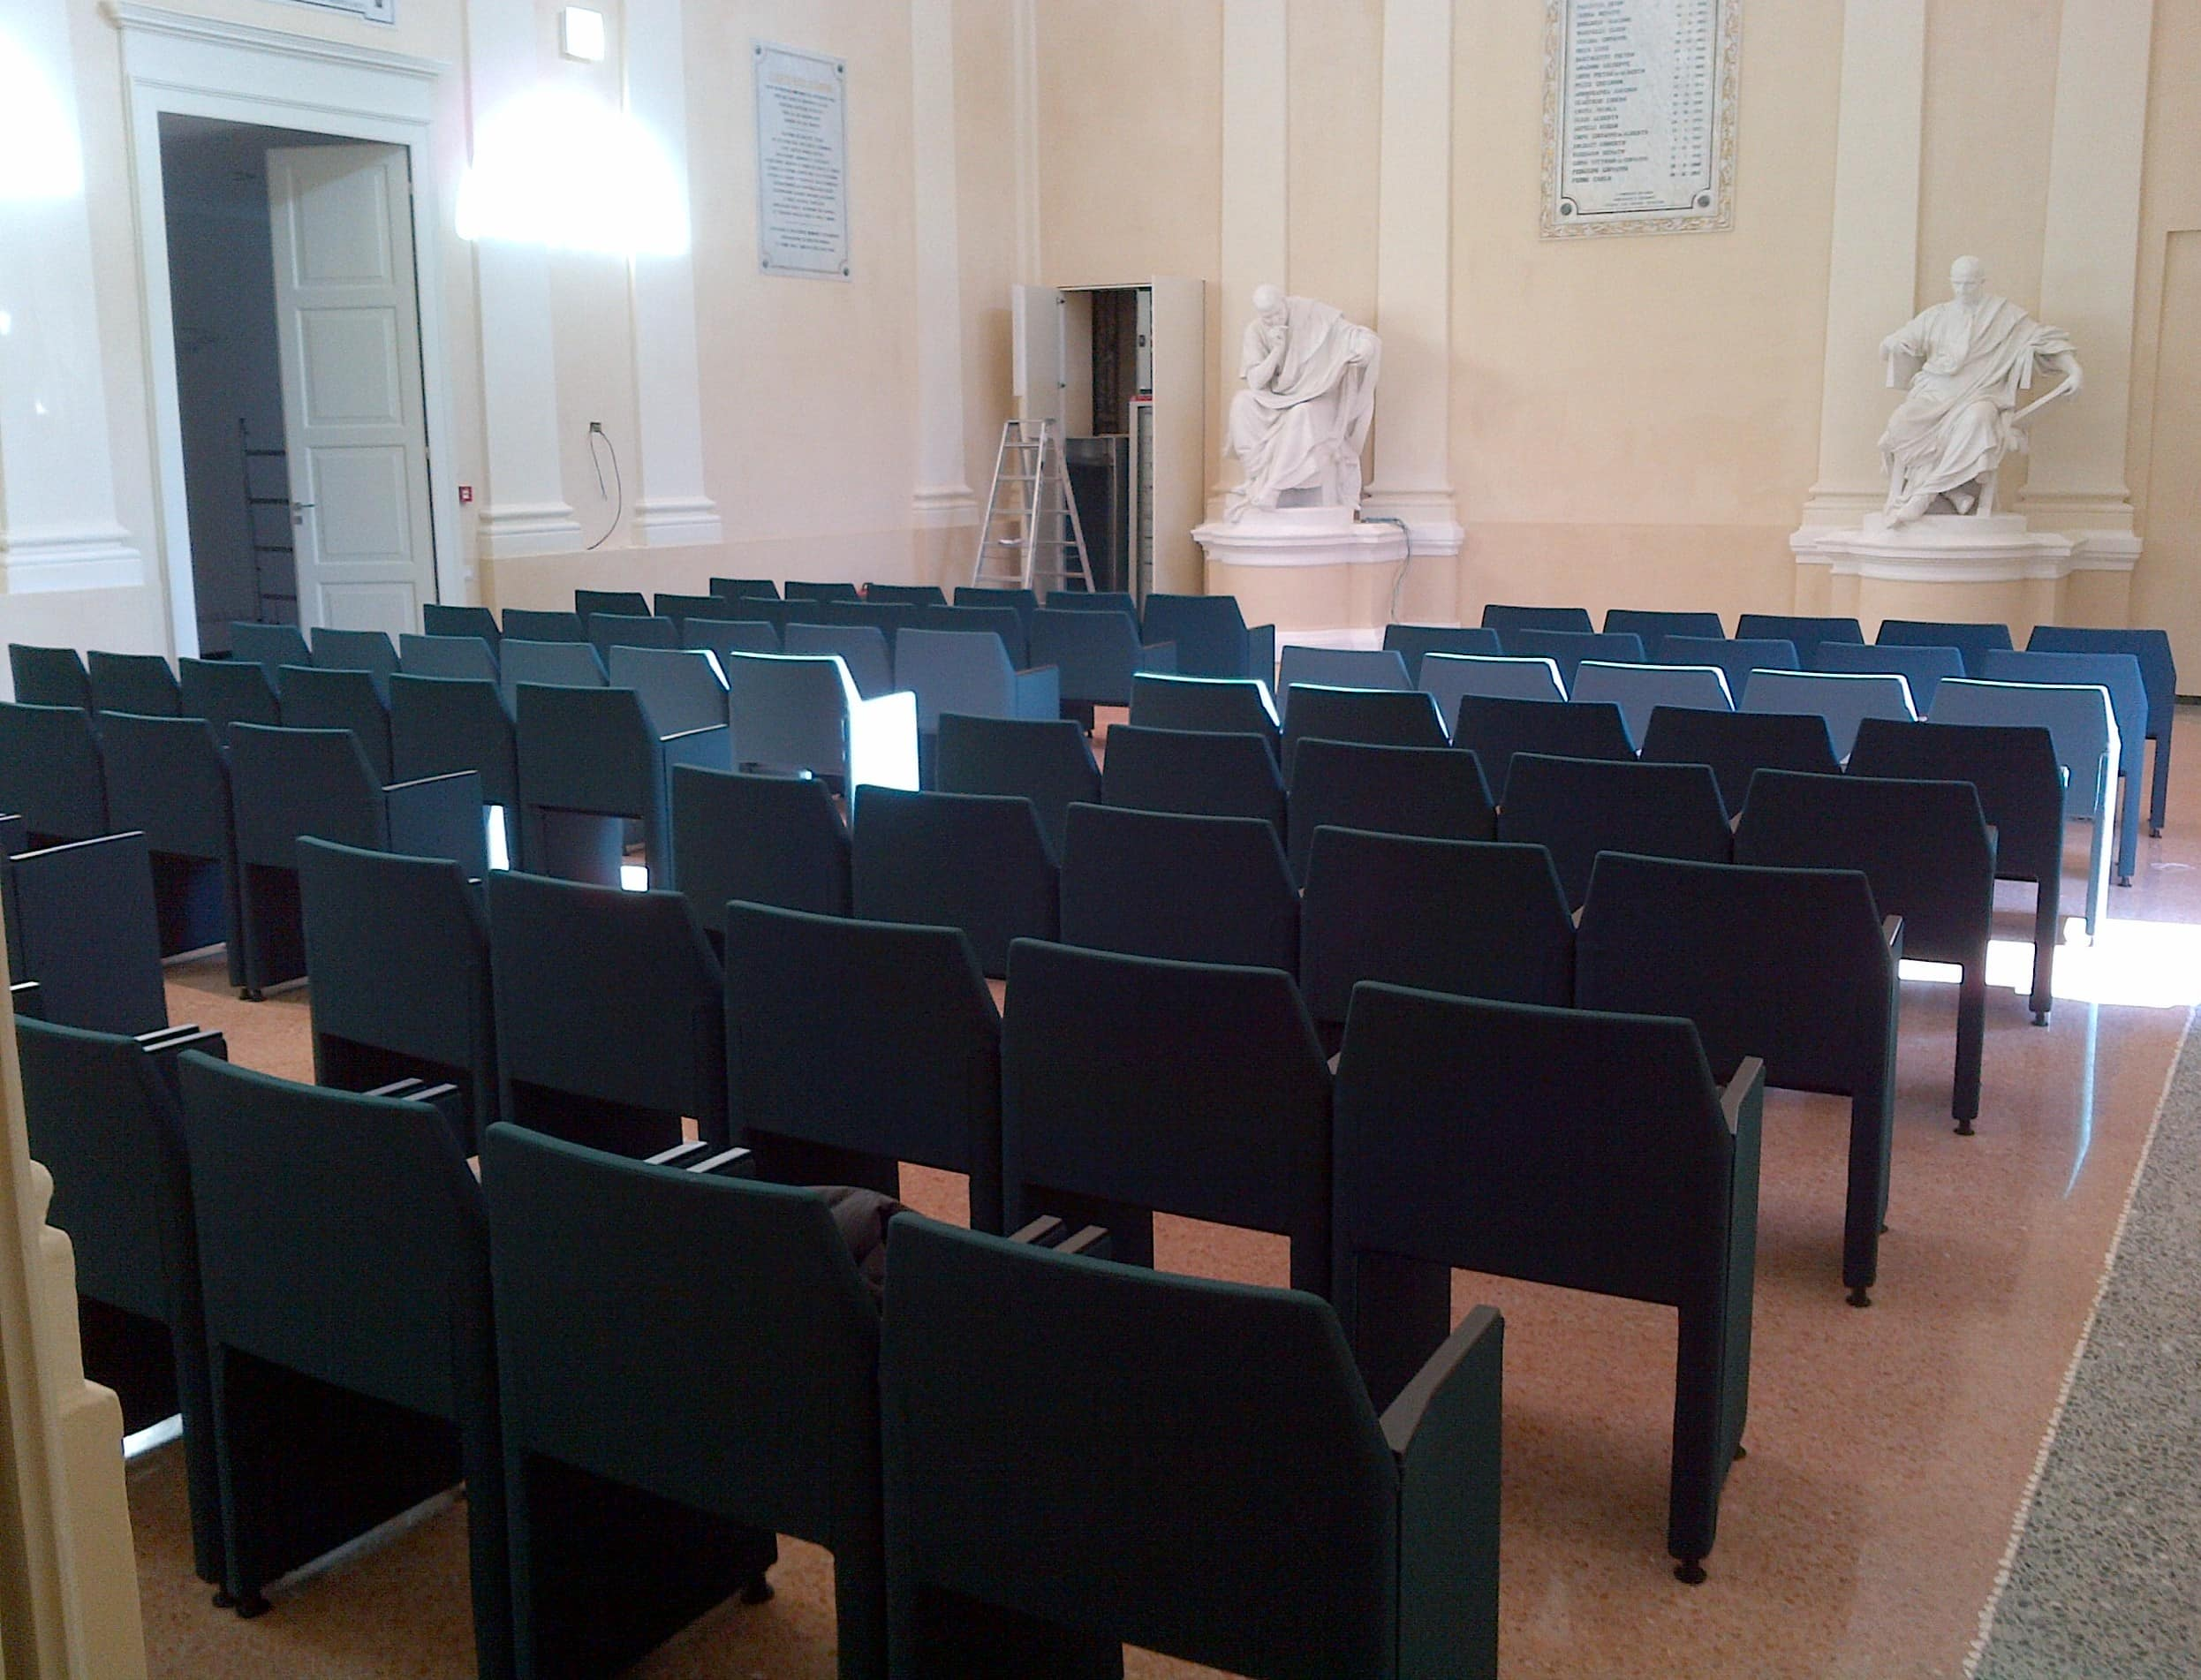 The conference room of the Municipality of Cesena